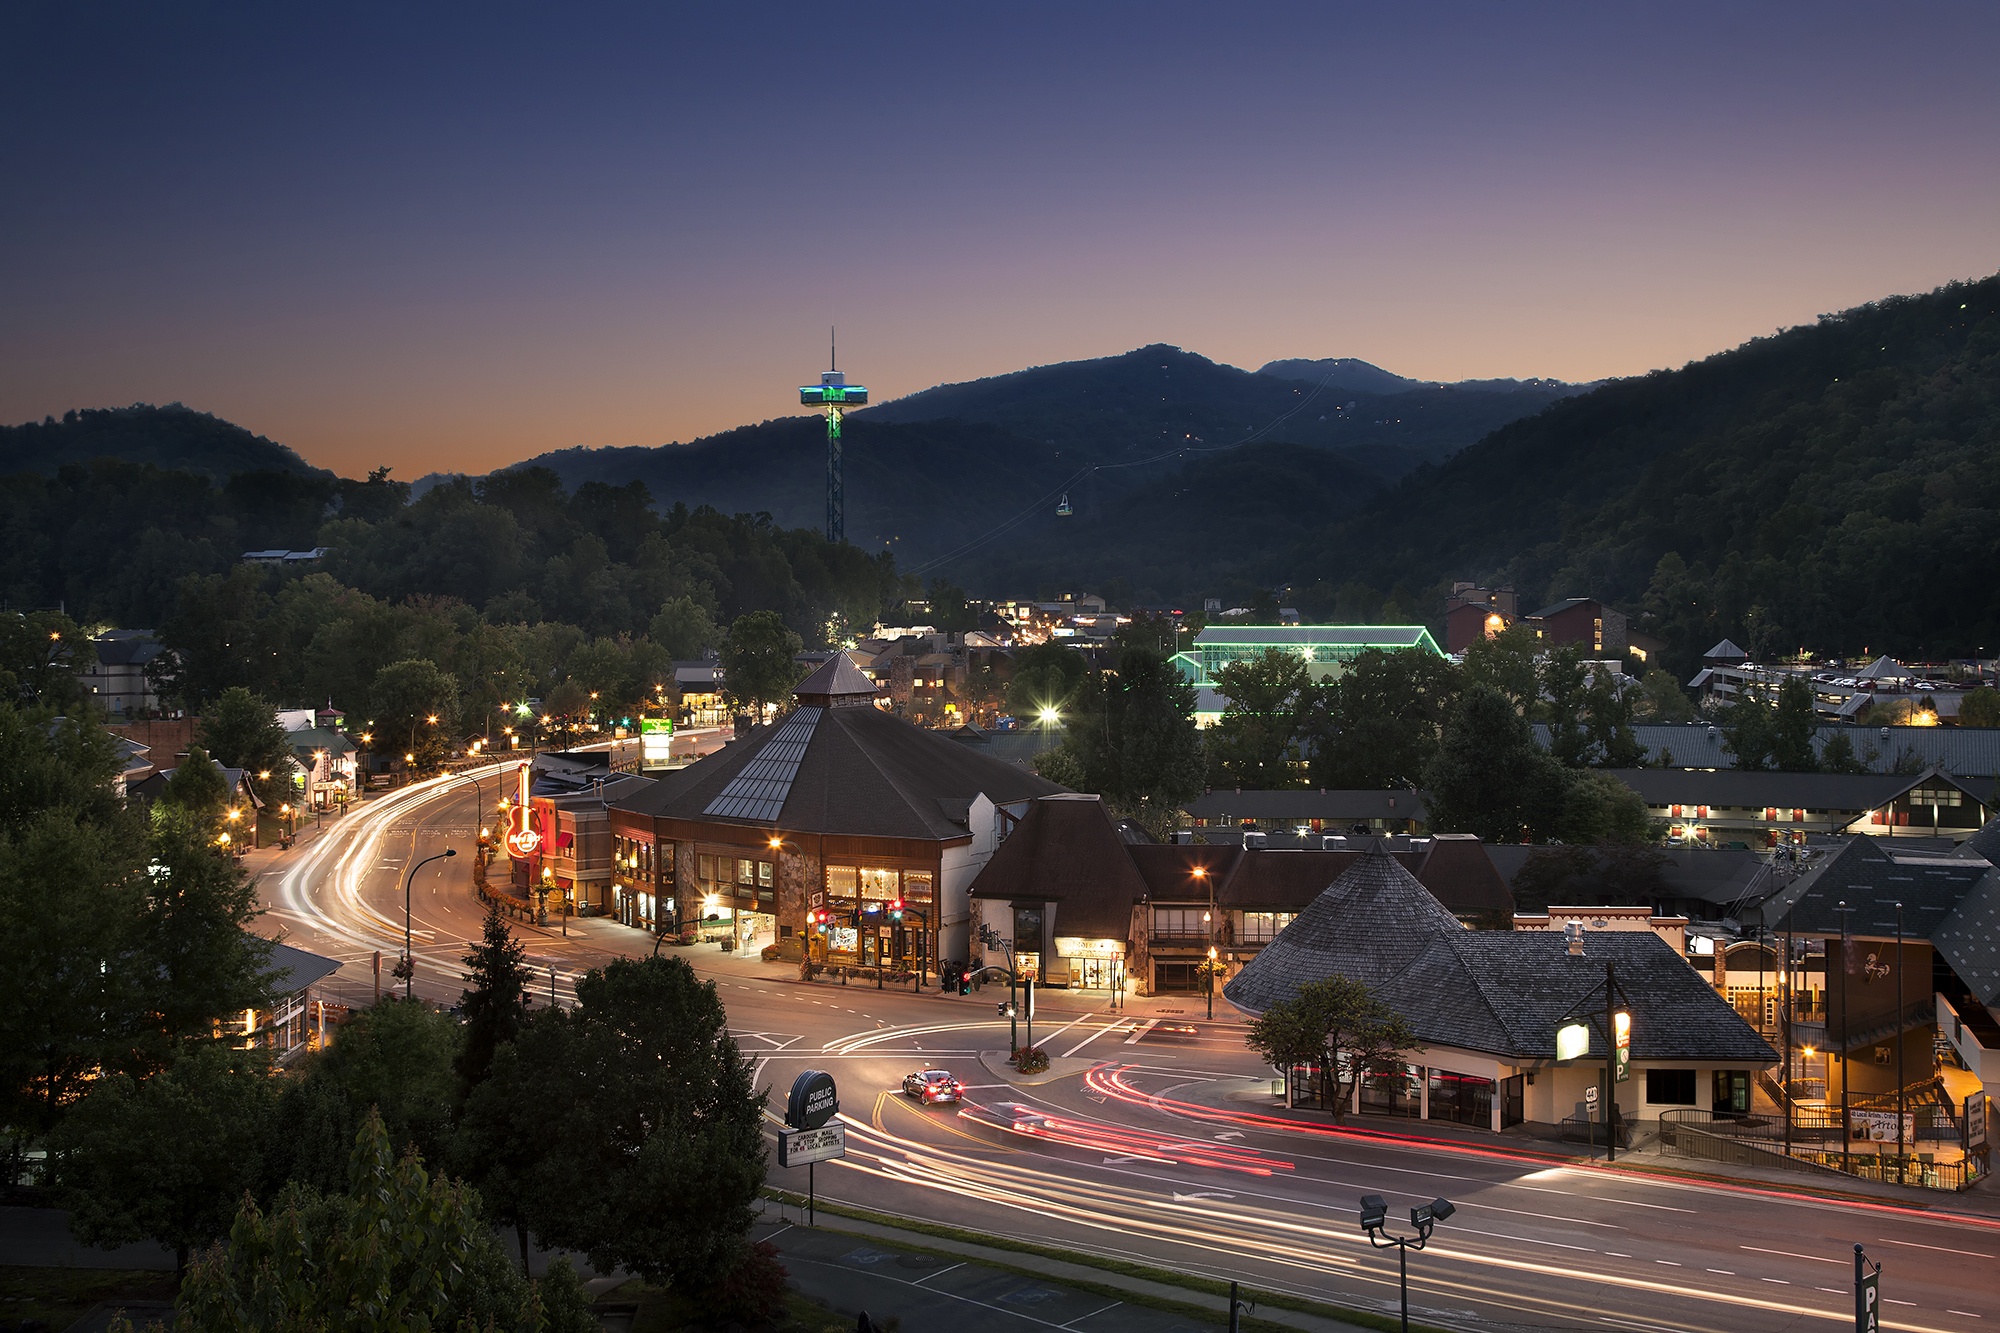 gatlinburg tennessee Welcome to ober gatlinburg learn more about skiing, attractions and the amusement park located in gatlinburg, tennessee, in the great smoky mountains.